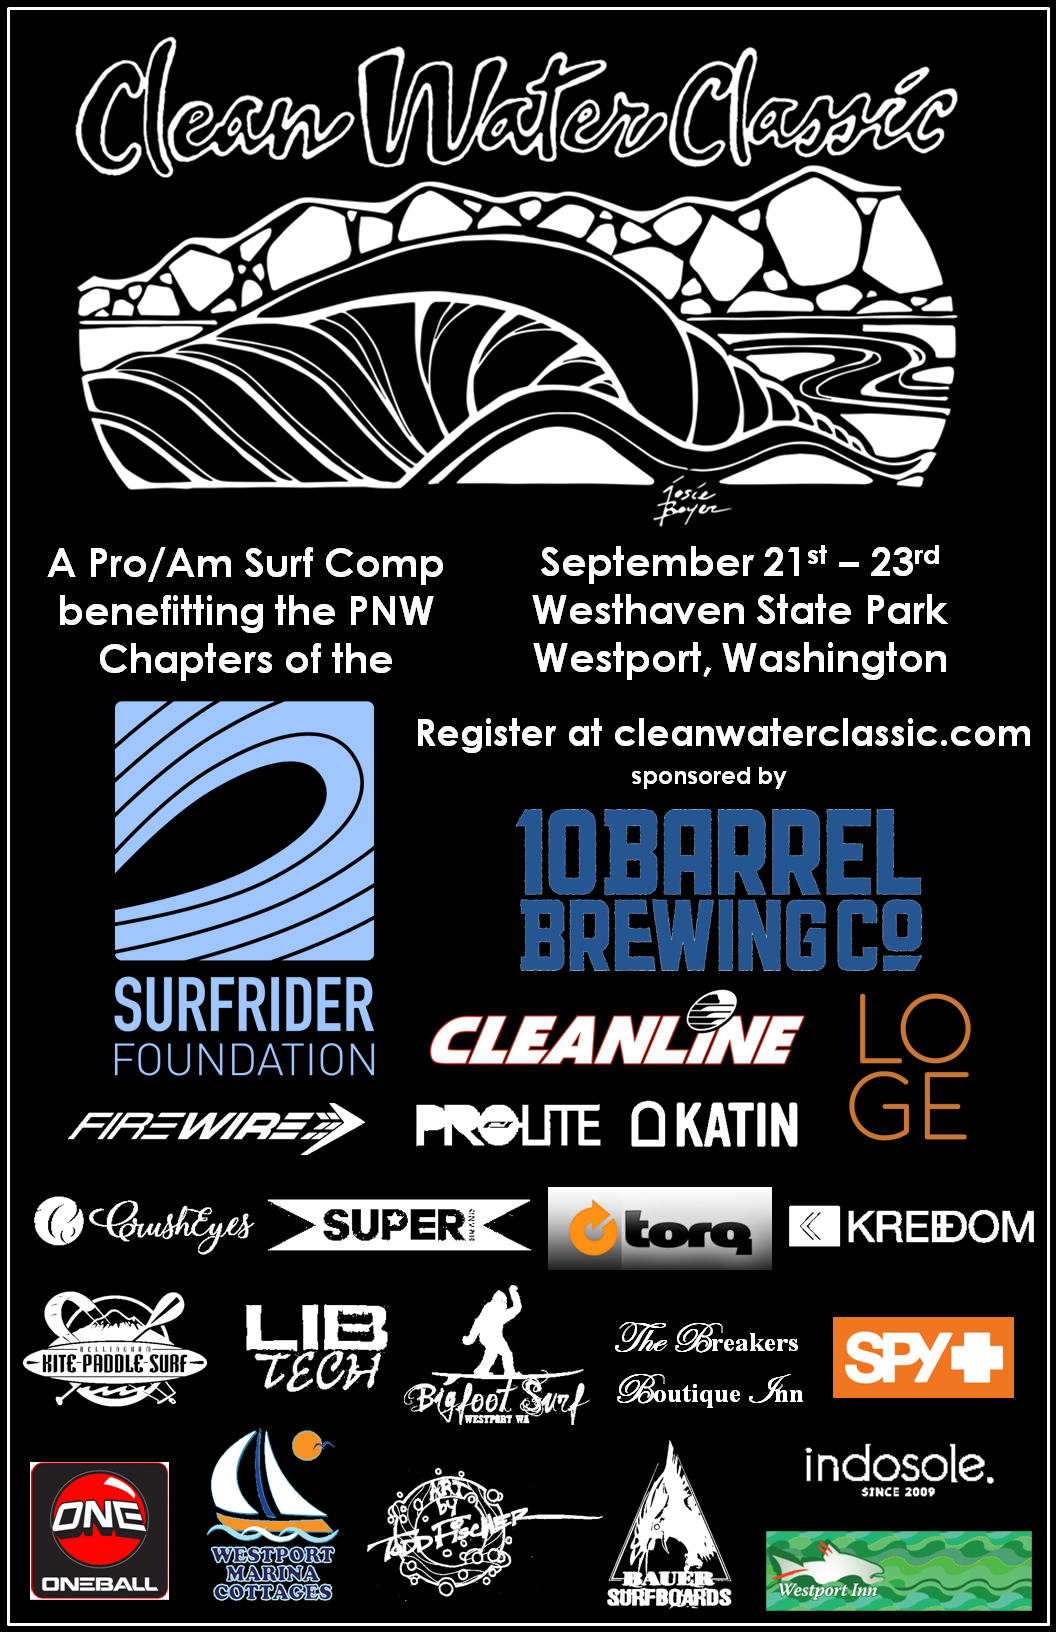 Clean Water Classic this weekend!